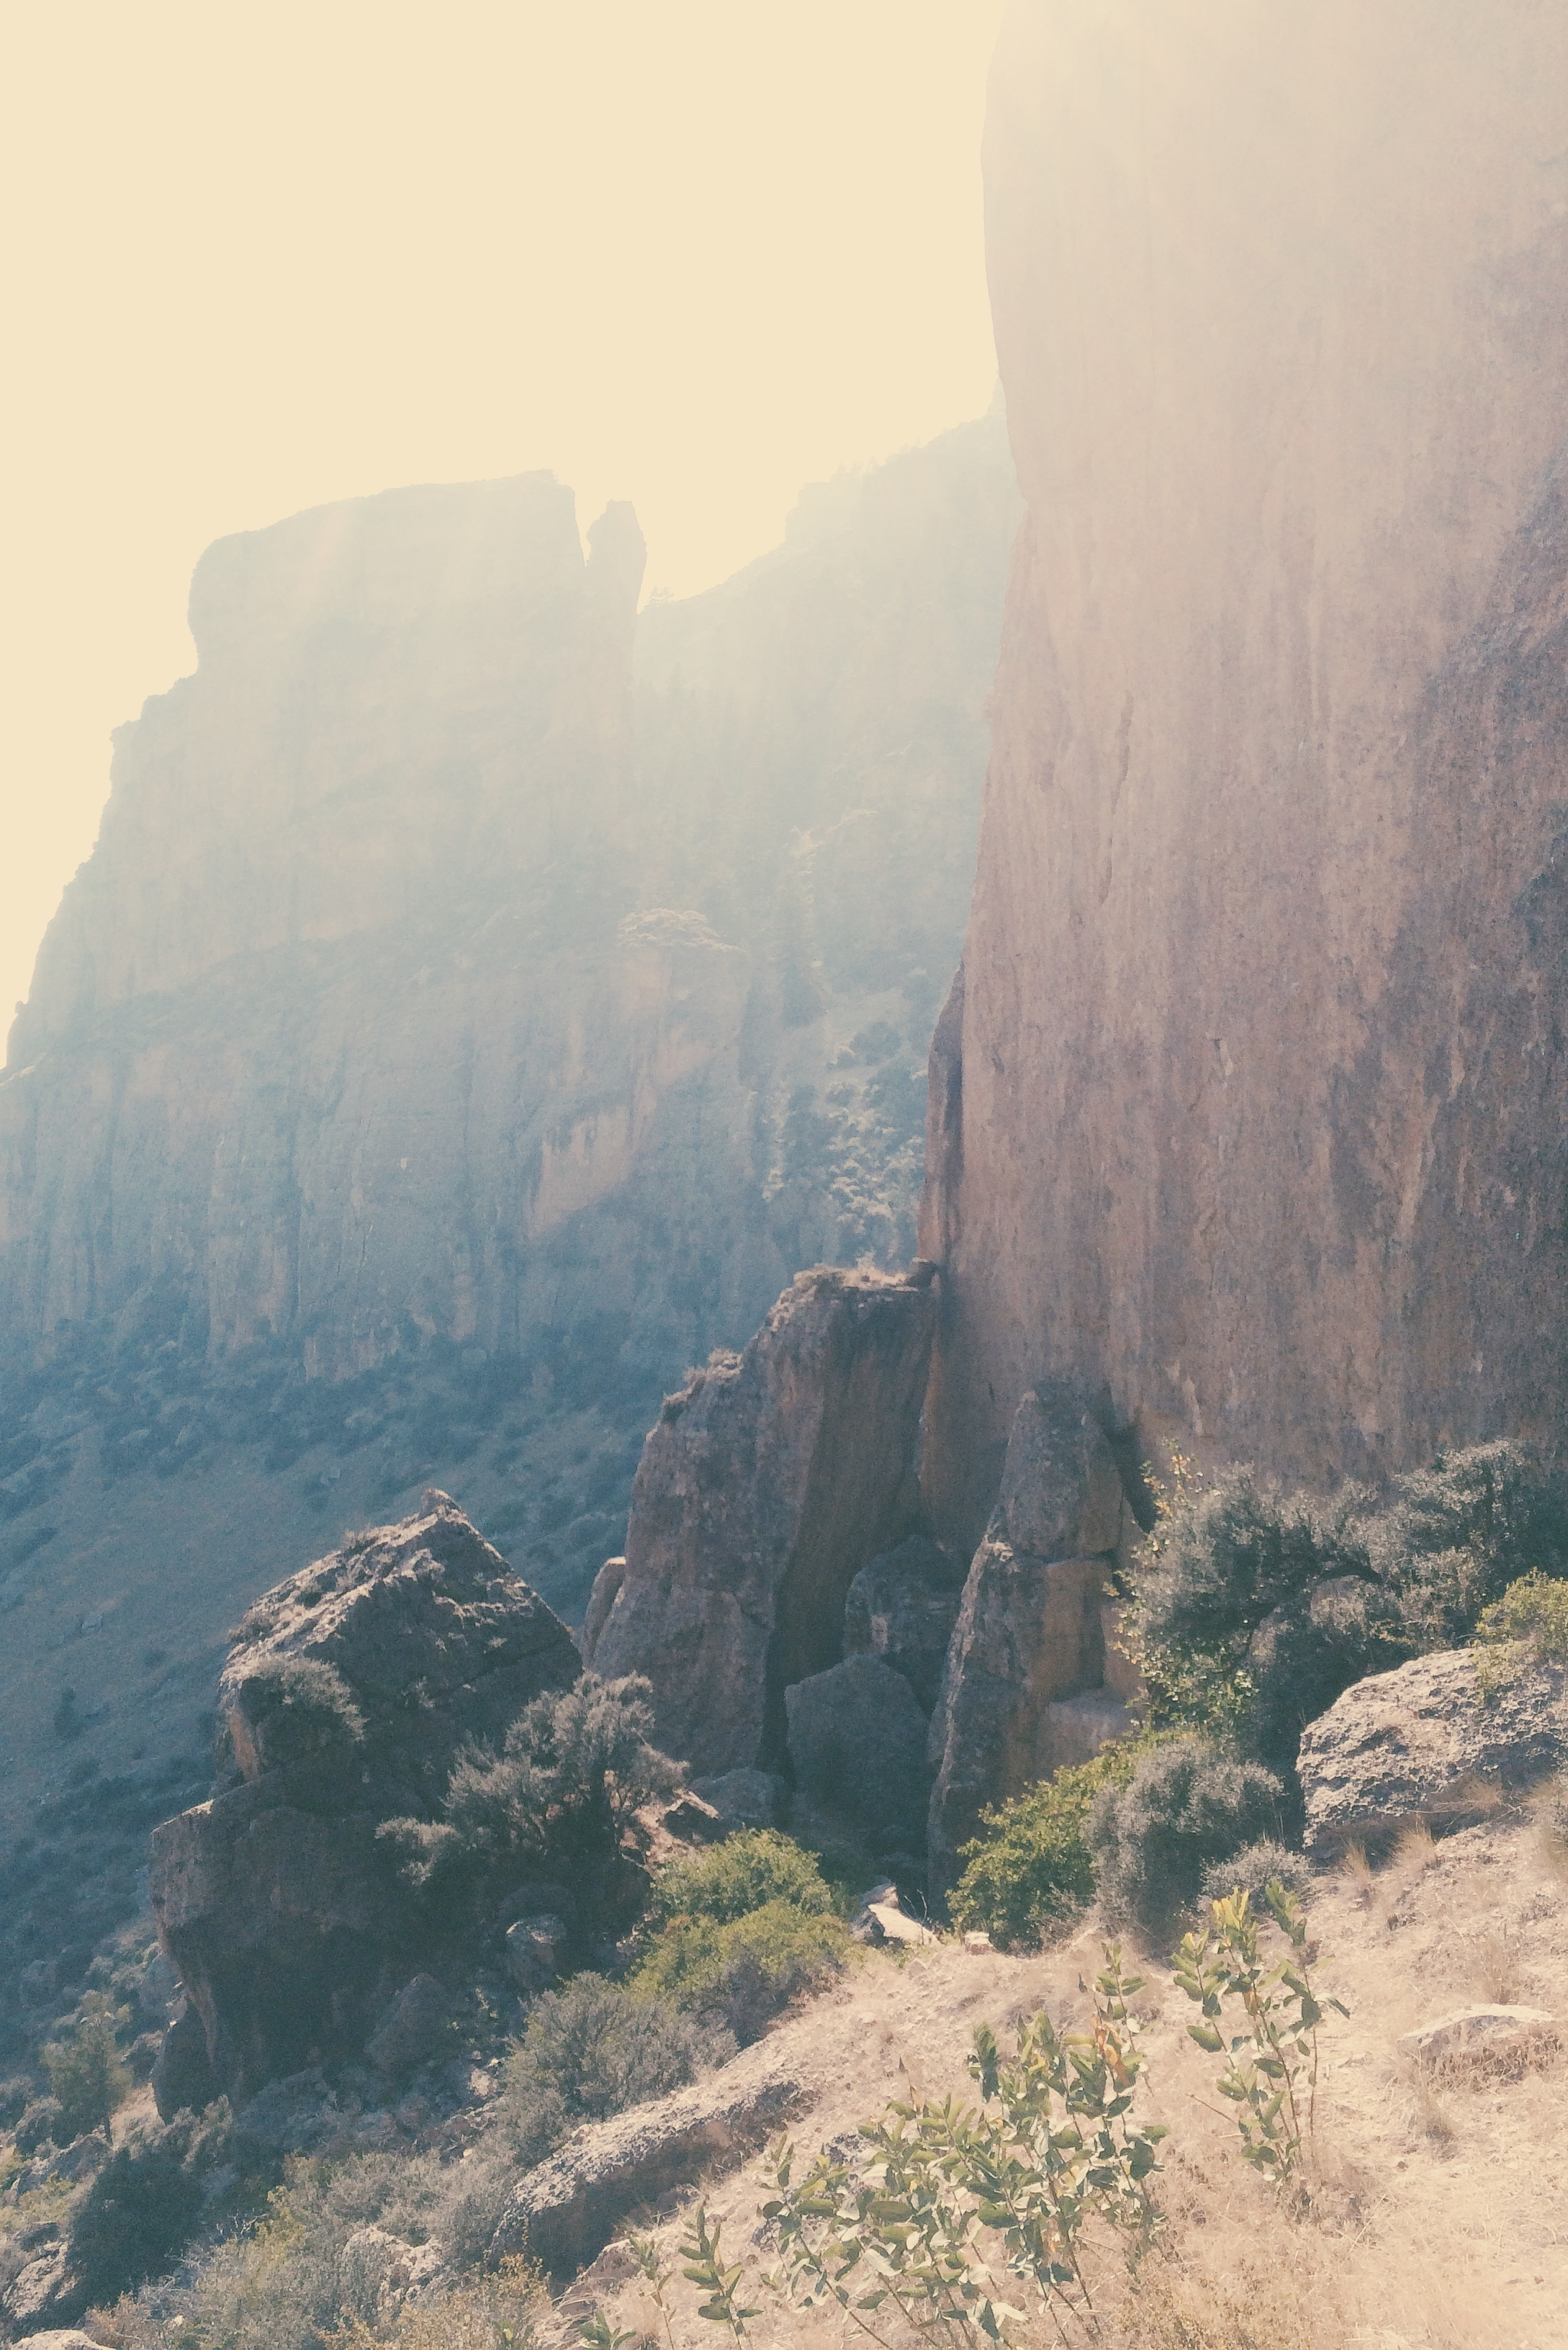 Amazing cliffs reminiscent of Smith Rock